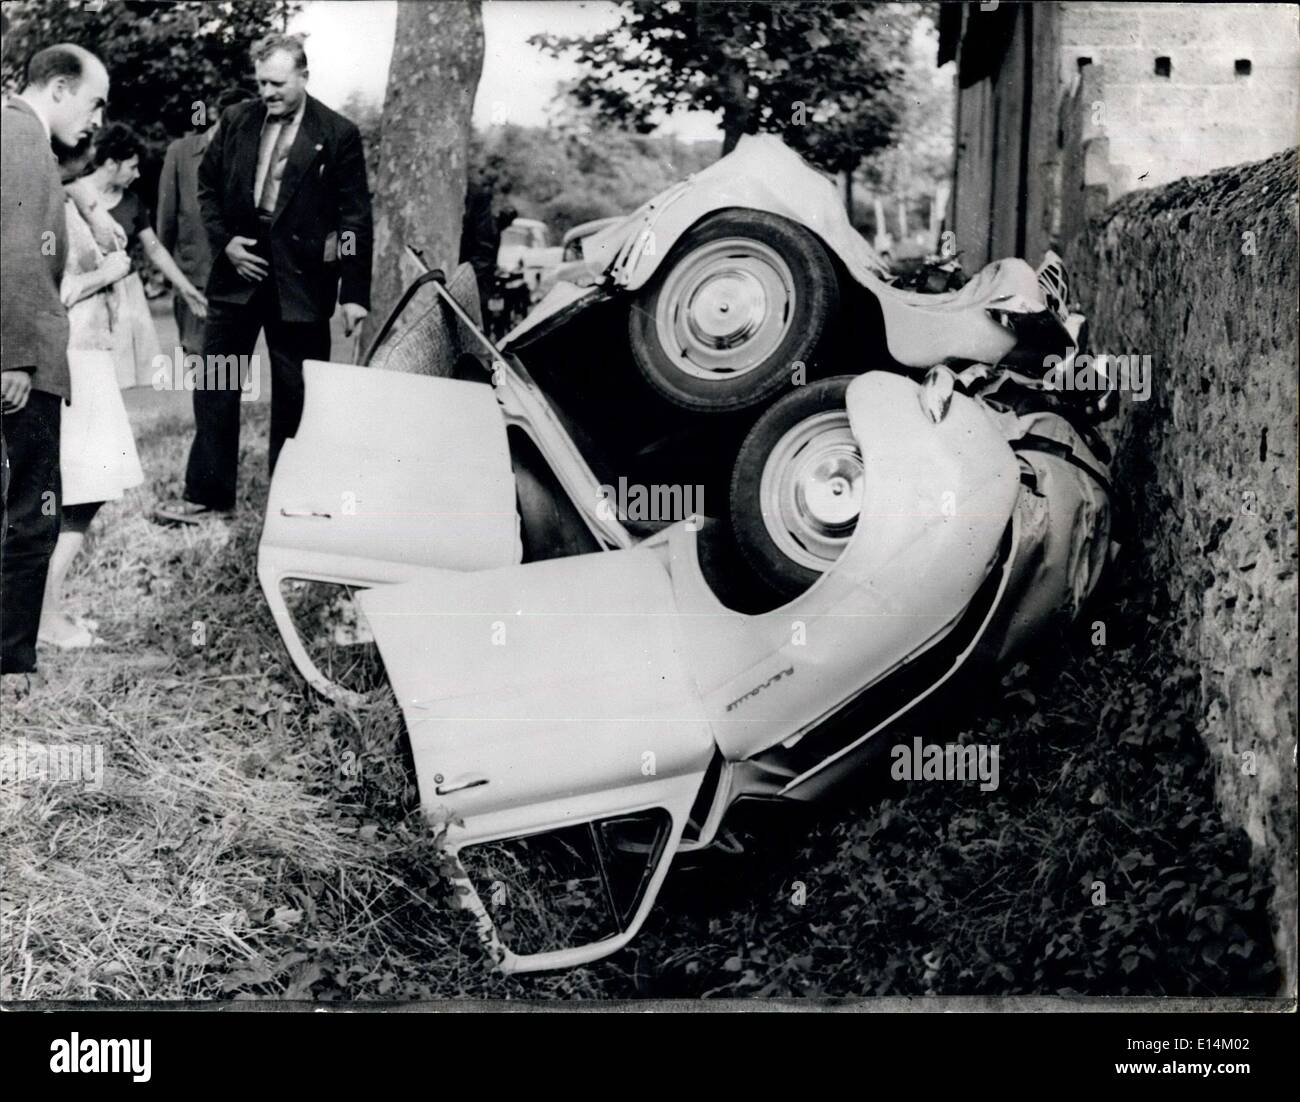 Apr. 05, 2012 - Making ends meet the hard way. This bumper to bumper accident let the driver escape unharmed. - Stock Image